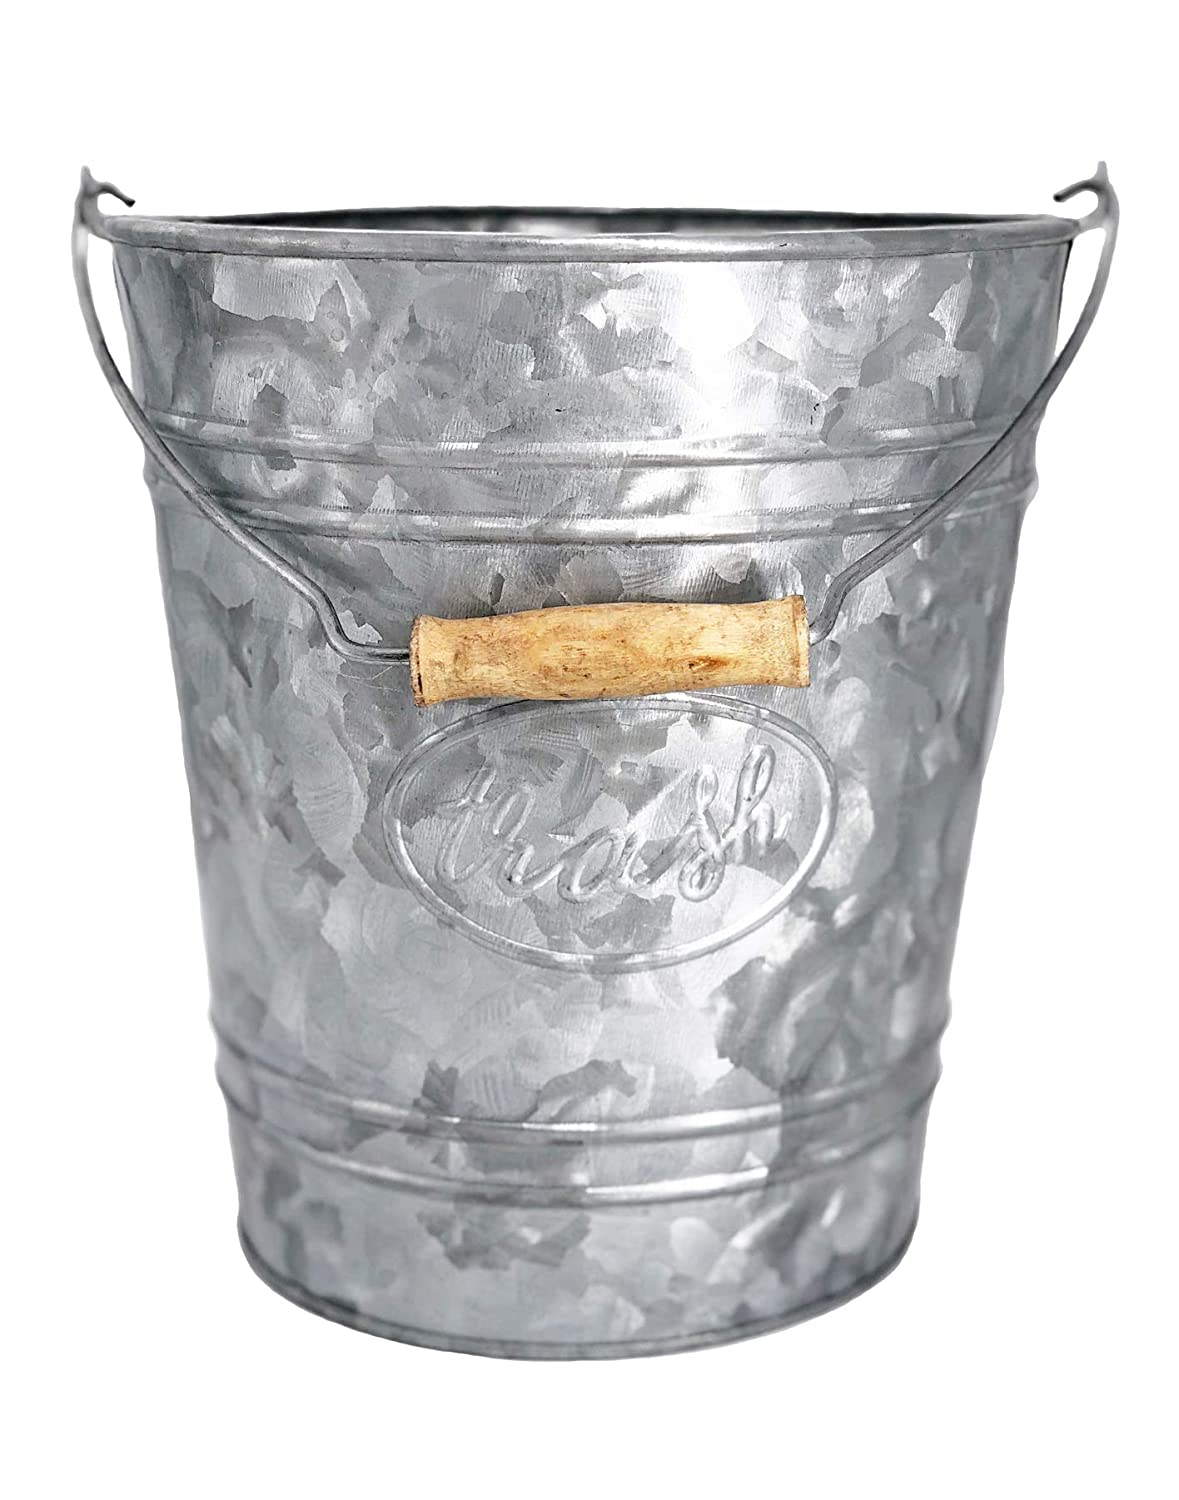 Autumn Alley Galvanized Trash Can | Small Bathroom Waste Basket | Embossed Rings, Oval Label and Turned Wood Handle add Farmhouse Charm | Galvanized Bathroom Accessories